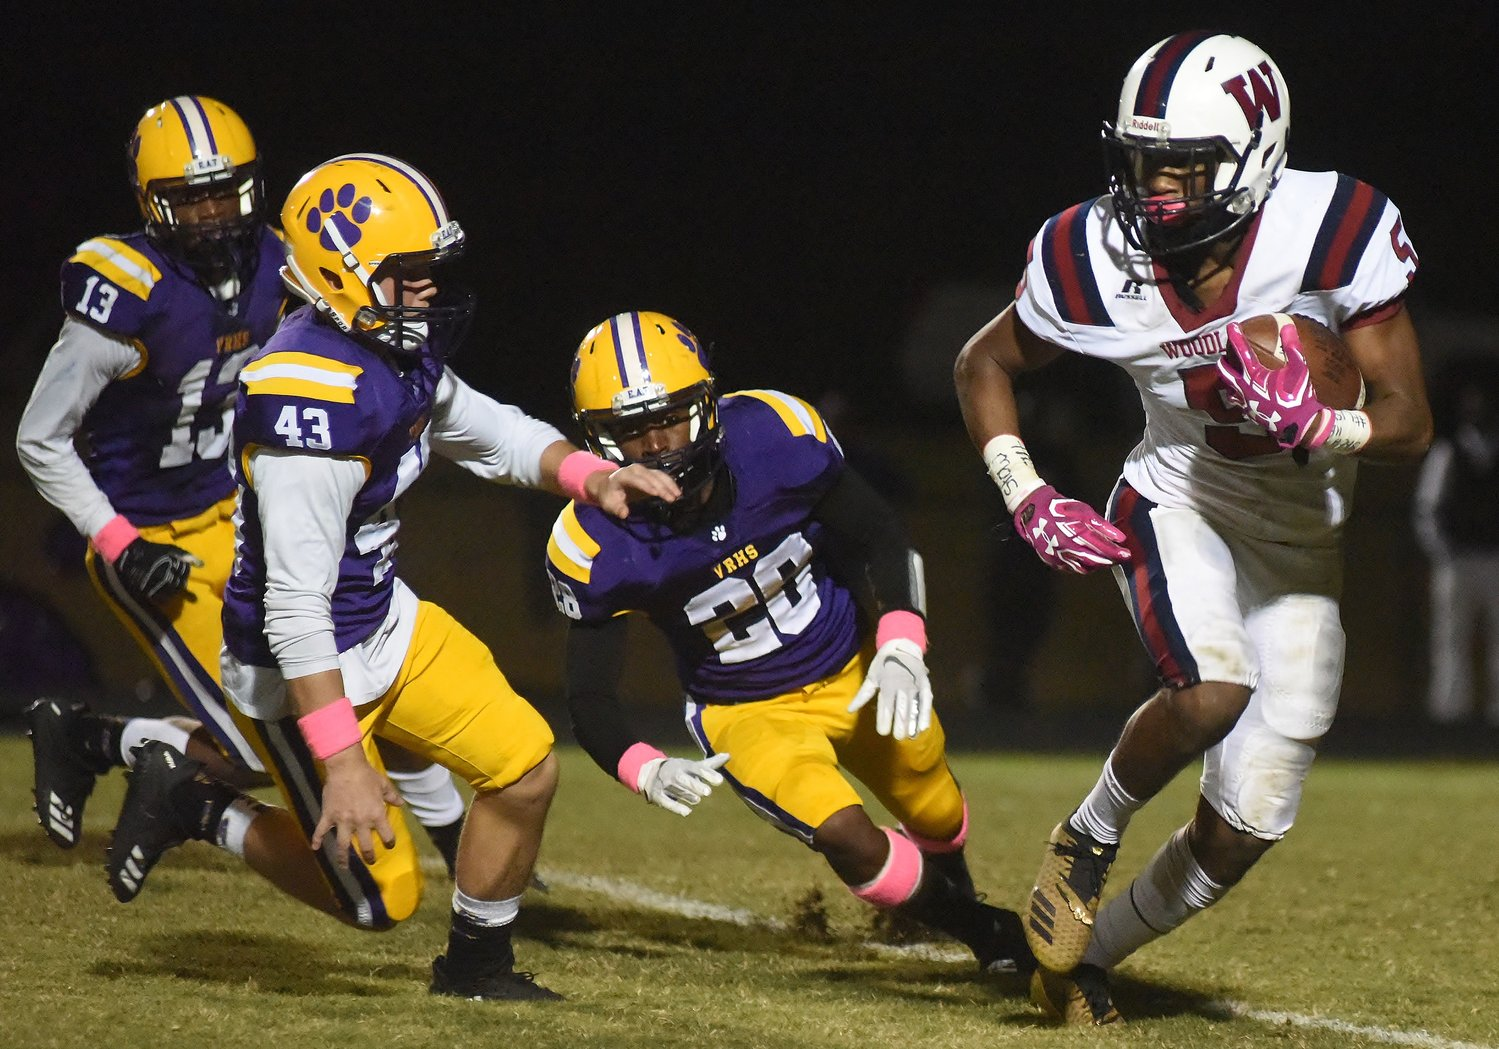 Woodland senior Titus Jones carries the ball against Villa Rica in a game this past season. Jones landed the DTN's all-county player of the year honor.